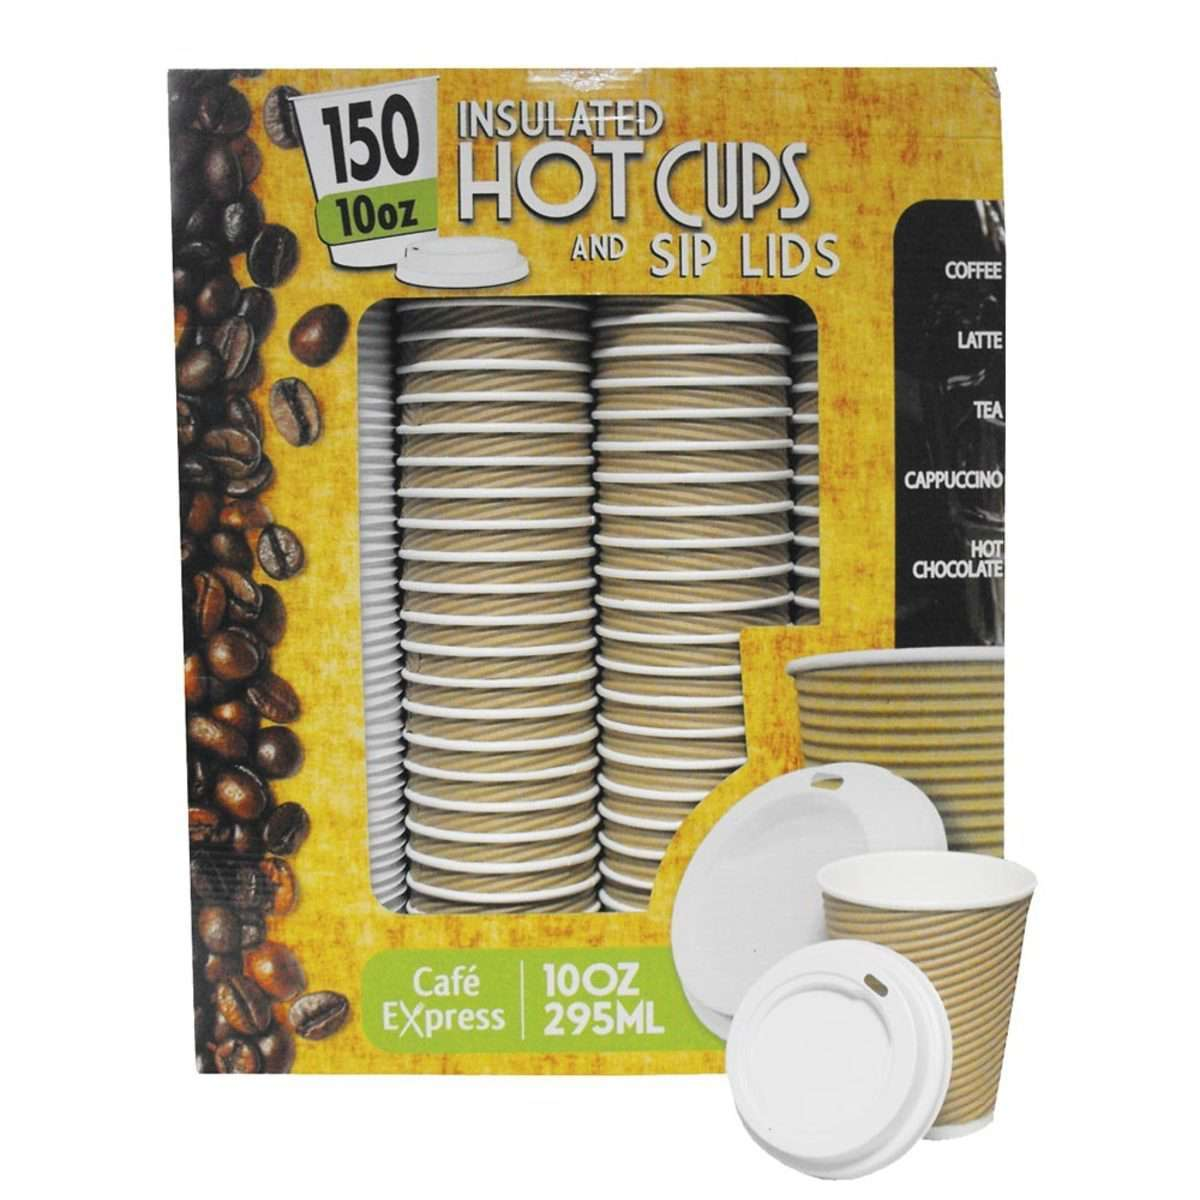 Cafe Express 10oz / 295ml Insulated Hot Cups with Sip Lids, 150 PackCafe Express 10oz / 295ml Insulated Hot Cups with Sip Lids, 150 Pack